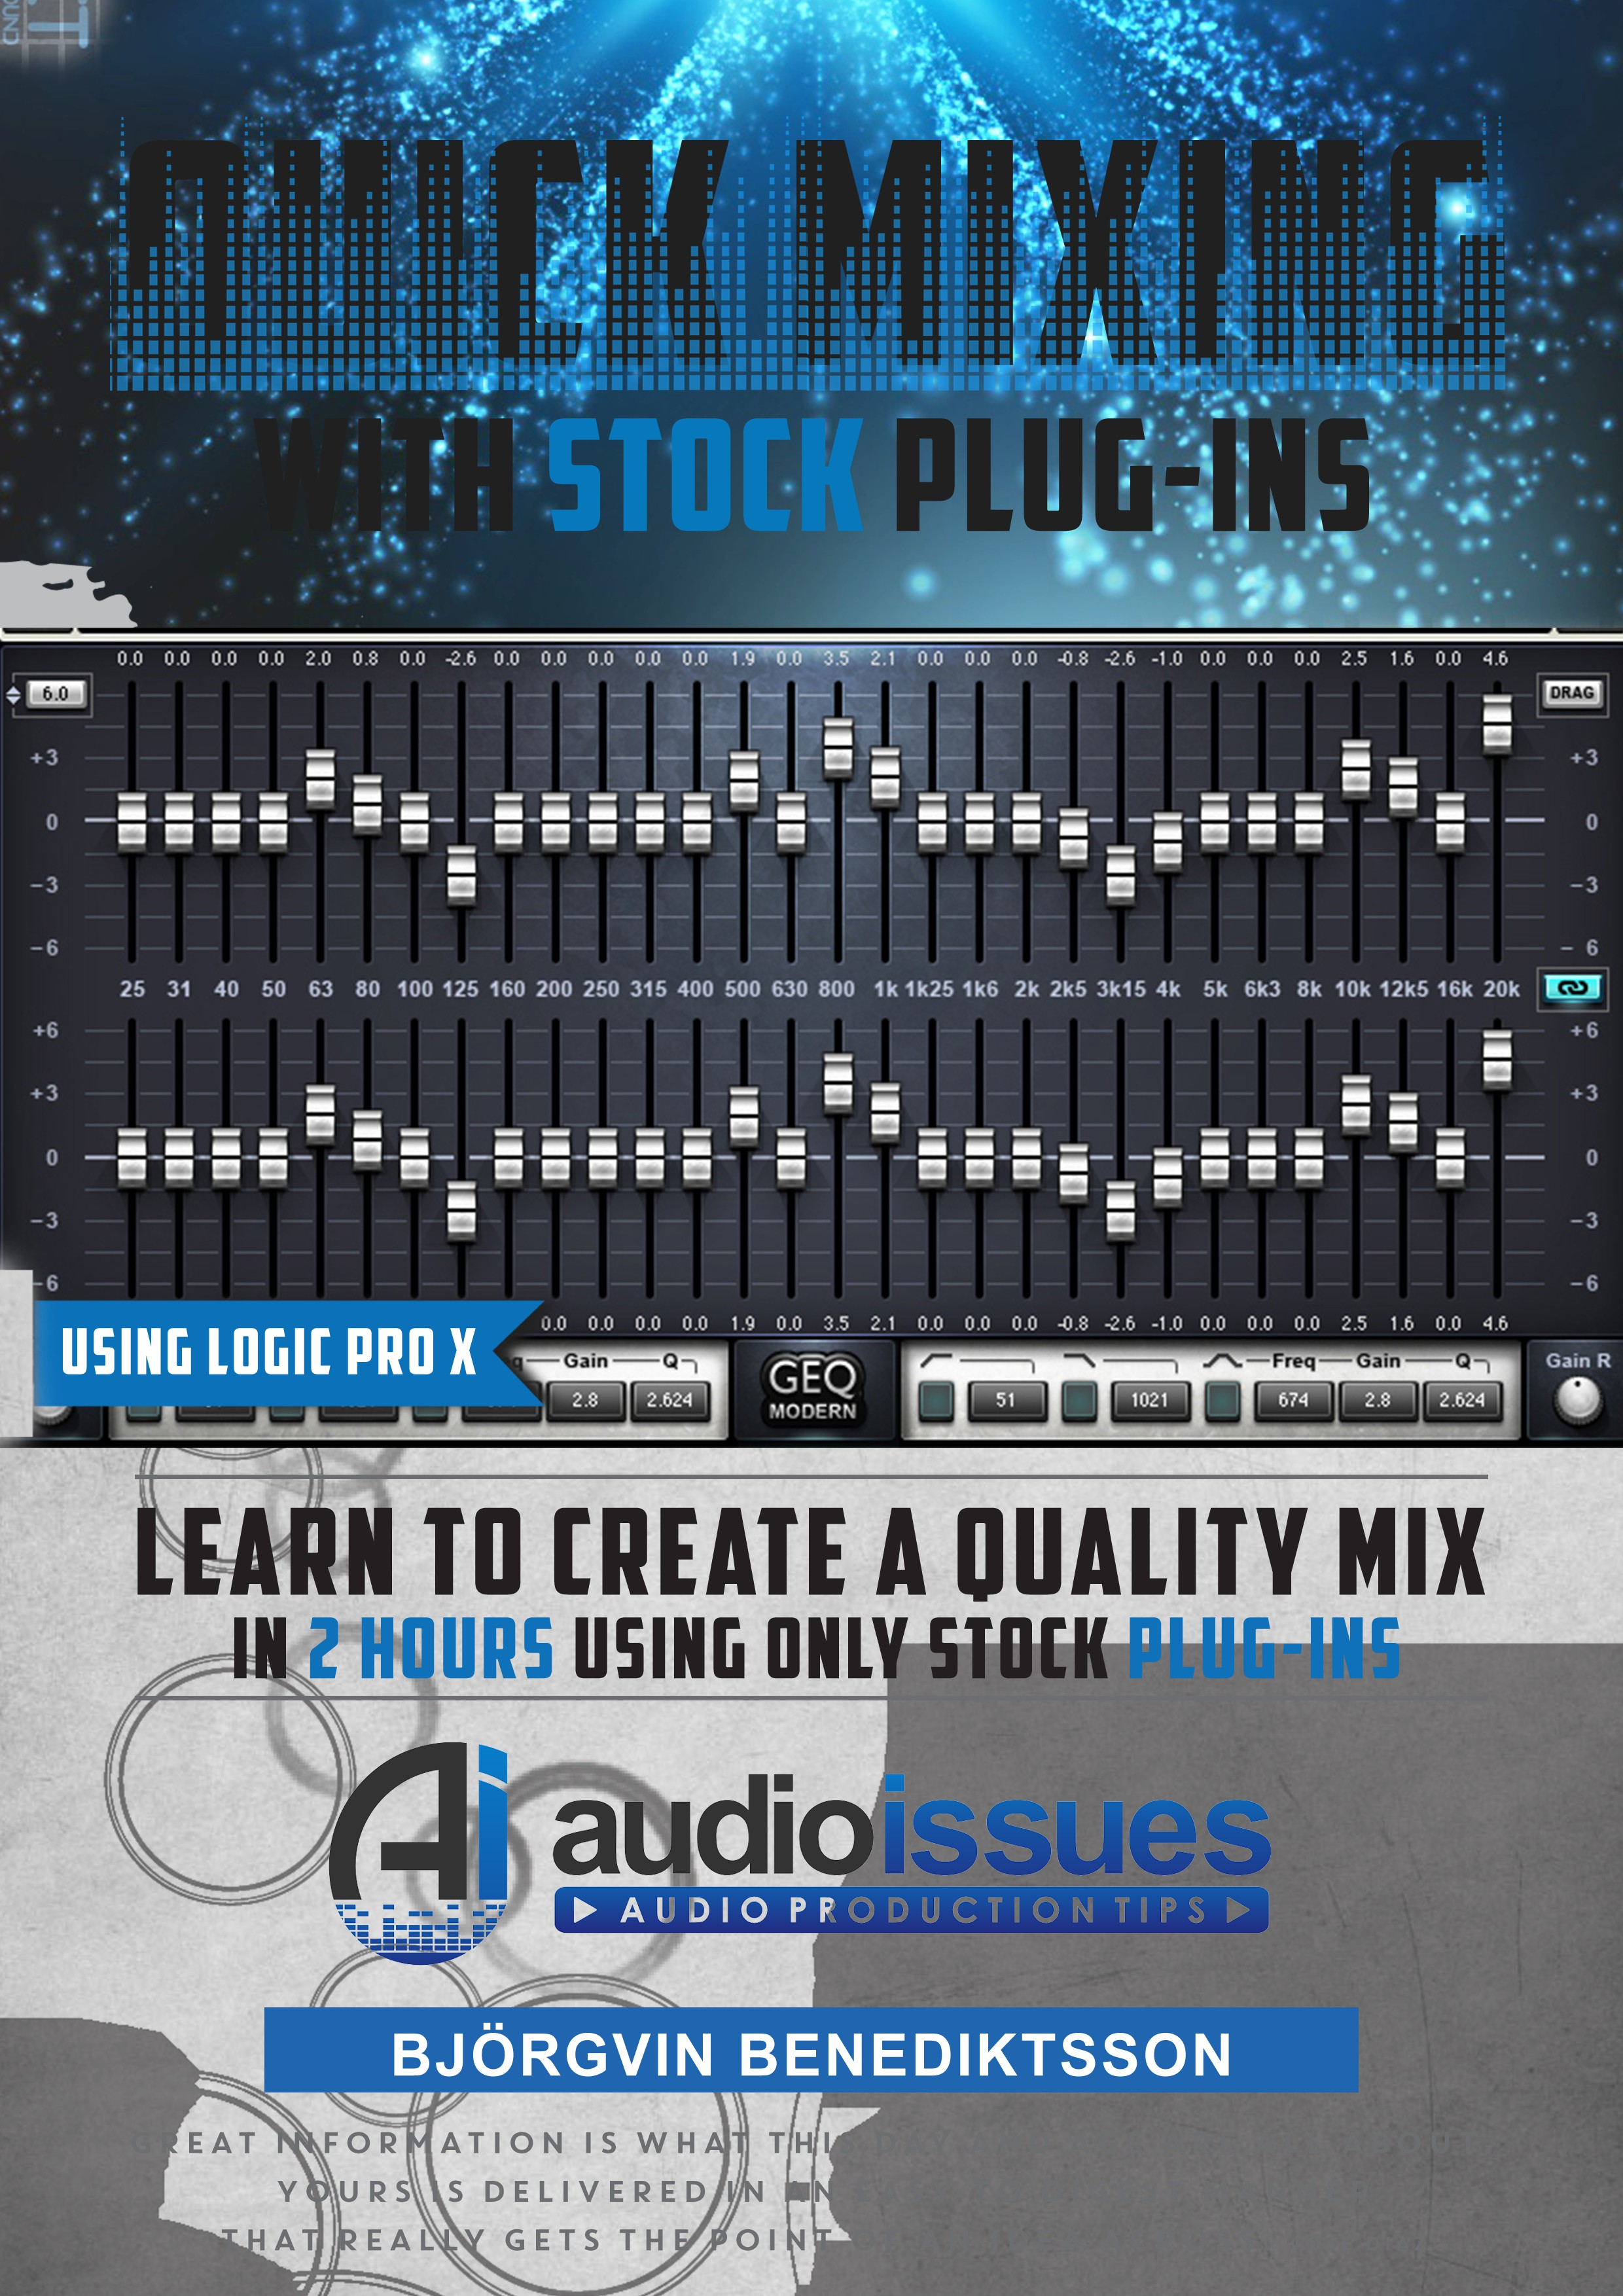 Create a Music Mixing Poster for an Audio Tutorial Series